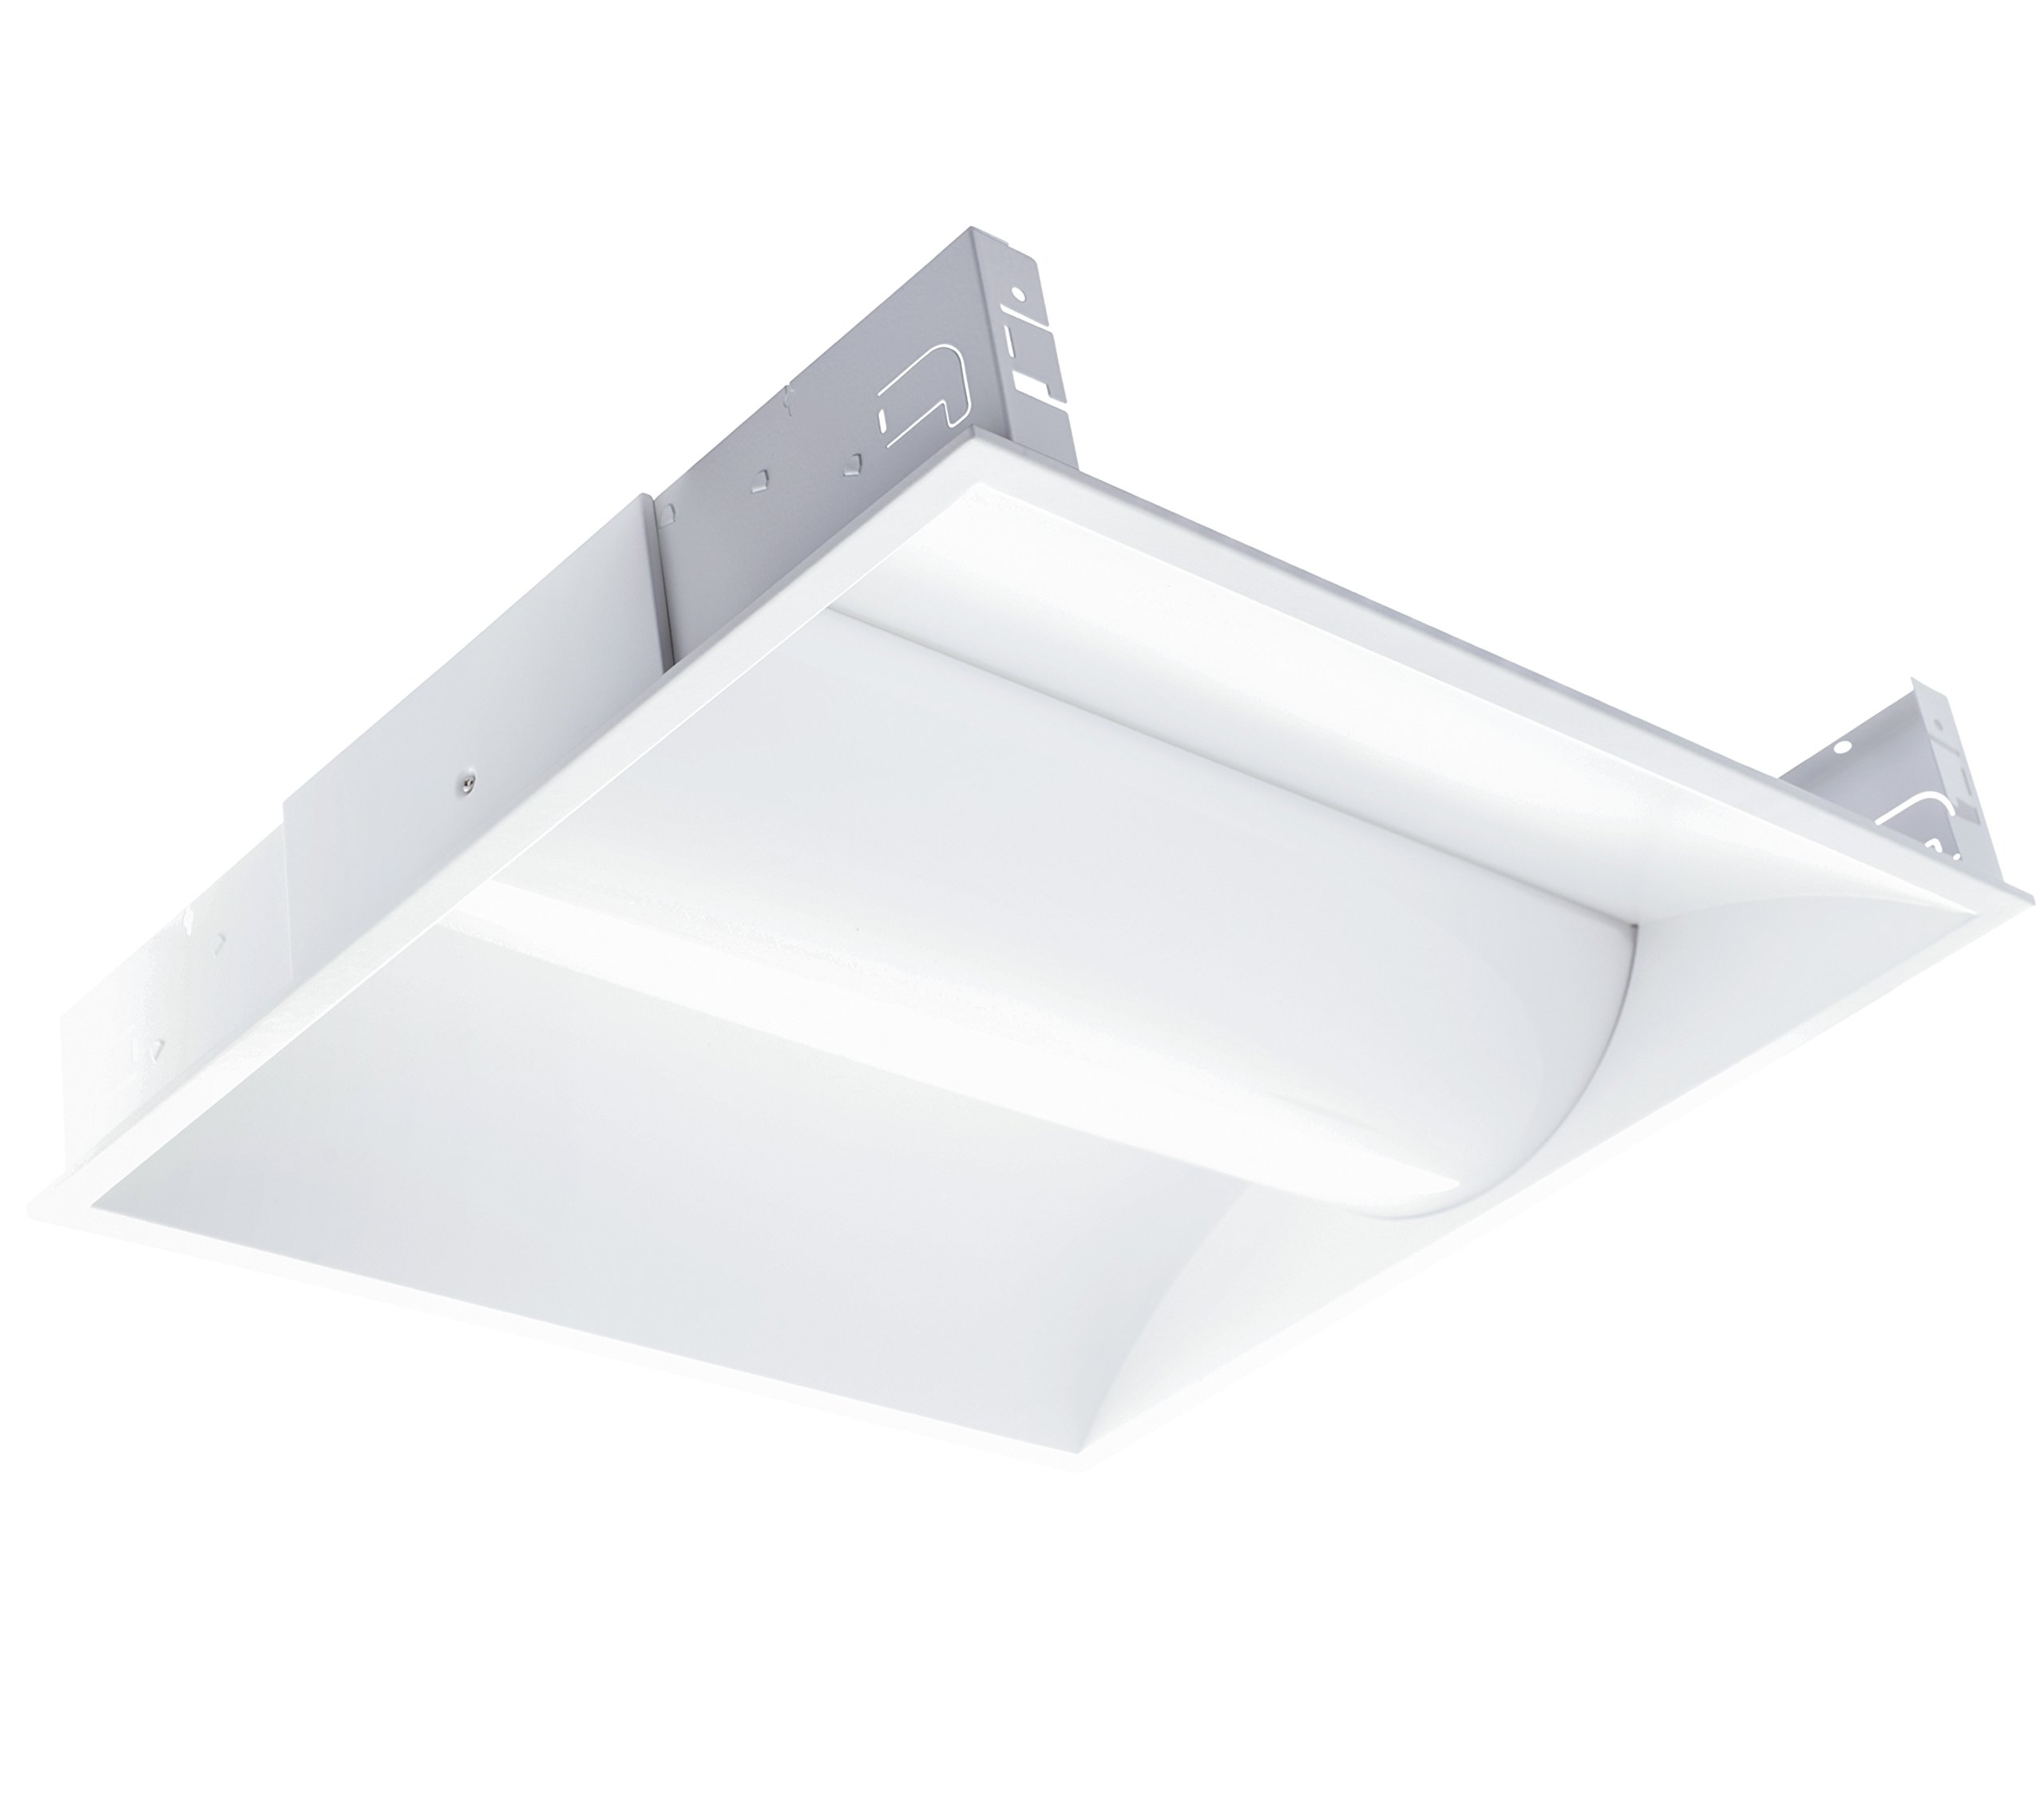 Westgate Lighting LED Troffer Light- LM79 & LM80 Tested - ROHS Compliant - UL Listed - IP20 Rating- 100-277V AC (40W, 5000K Matt White) by Westgate